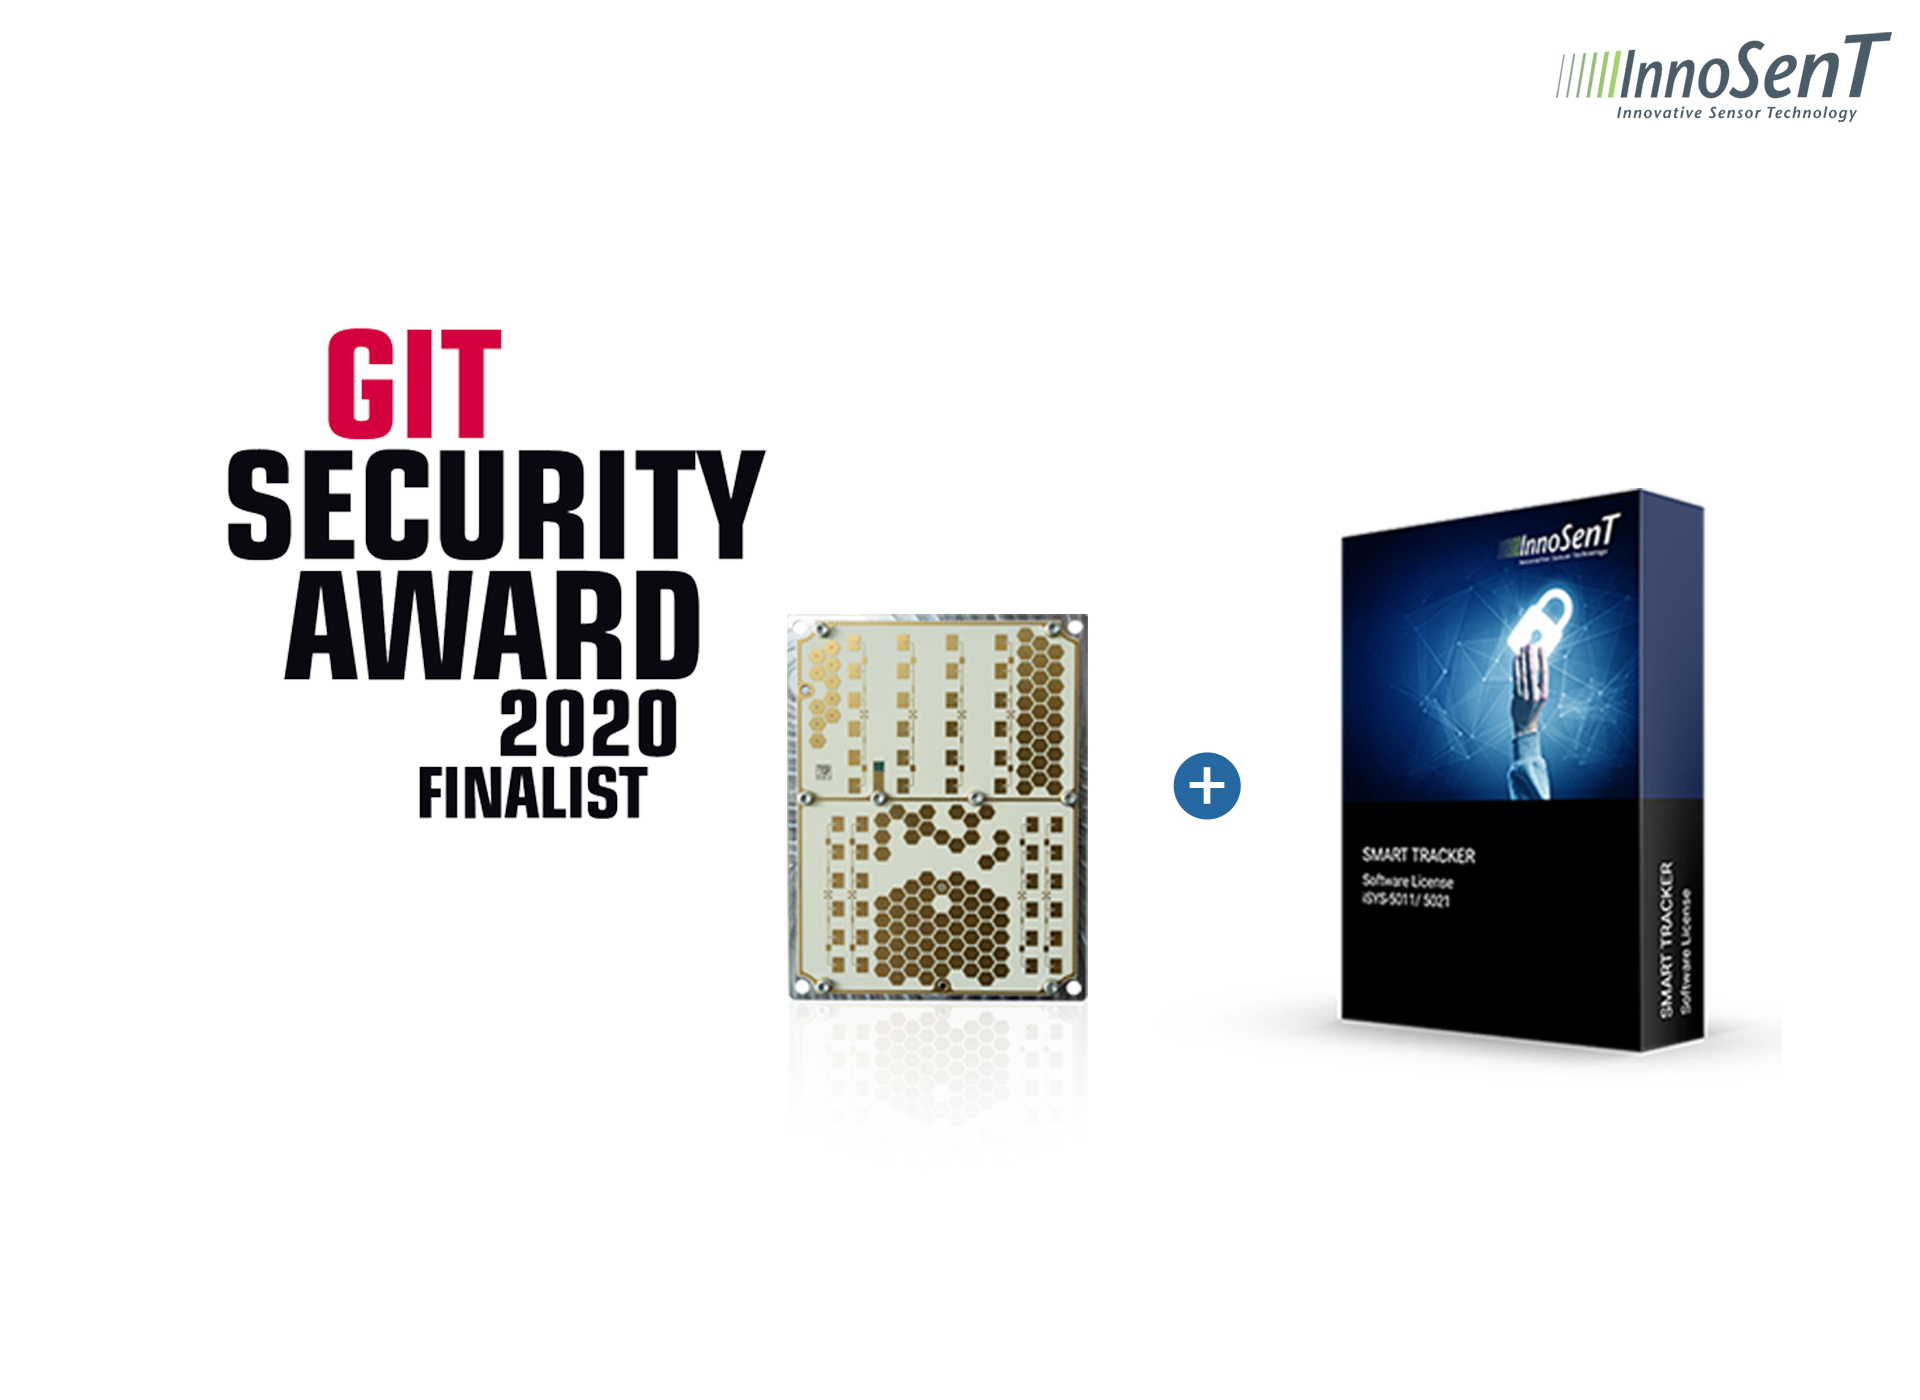 iSYS-5021 radar system in the final round of the GIT SECURITY AWARD 2020